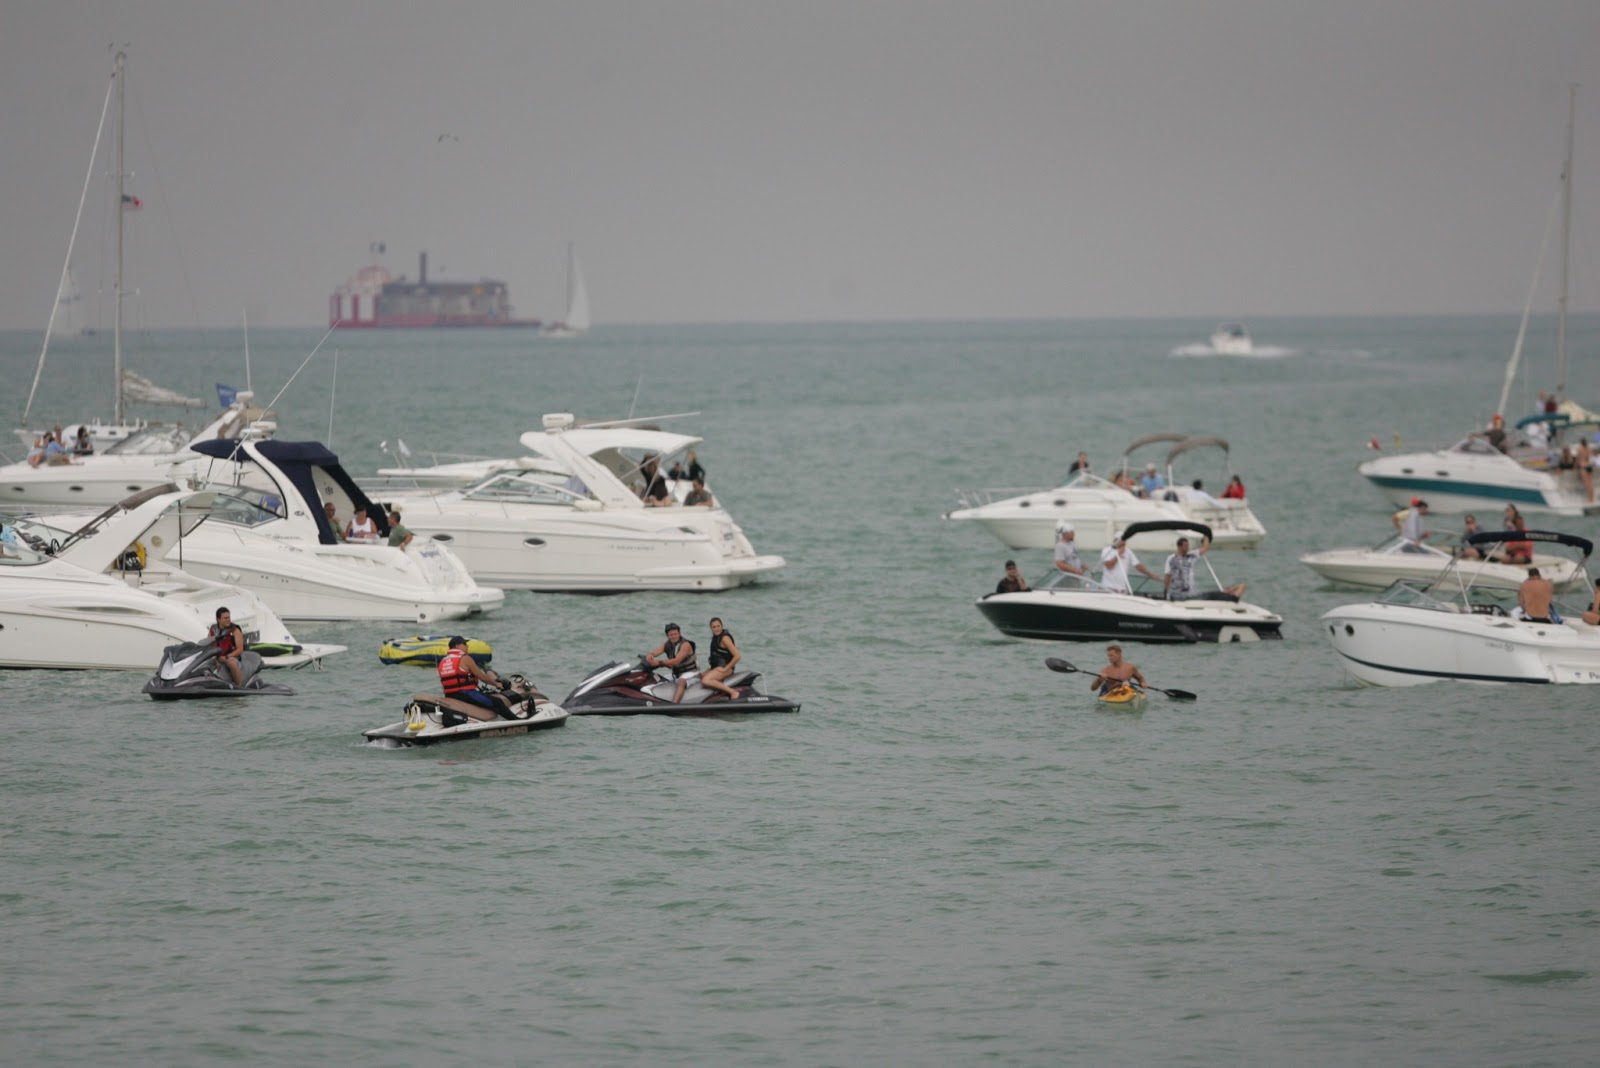 Annmarie loves boating on lake michigan when she is not busy as a CRA